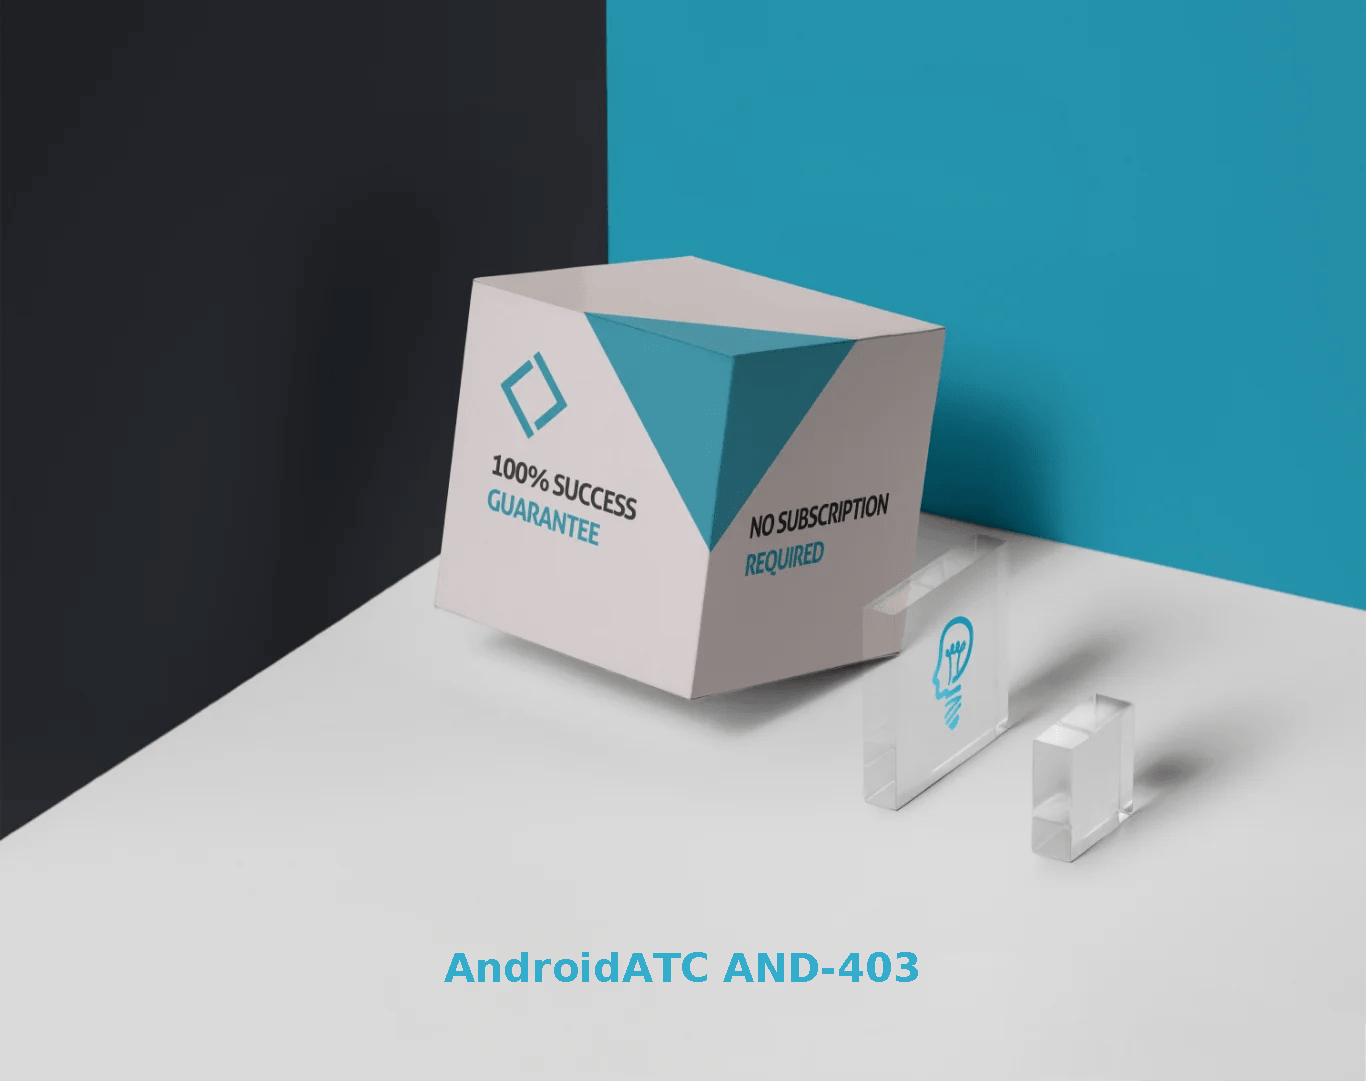 AndroidATC AND-403 Exams